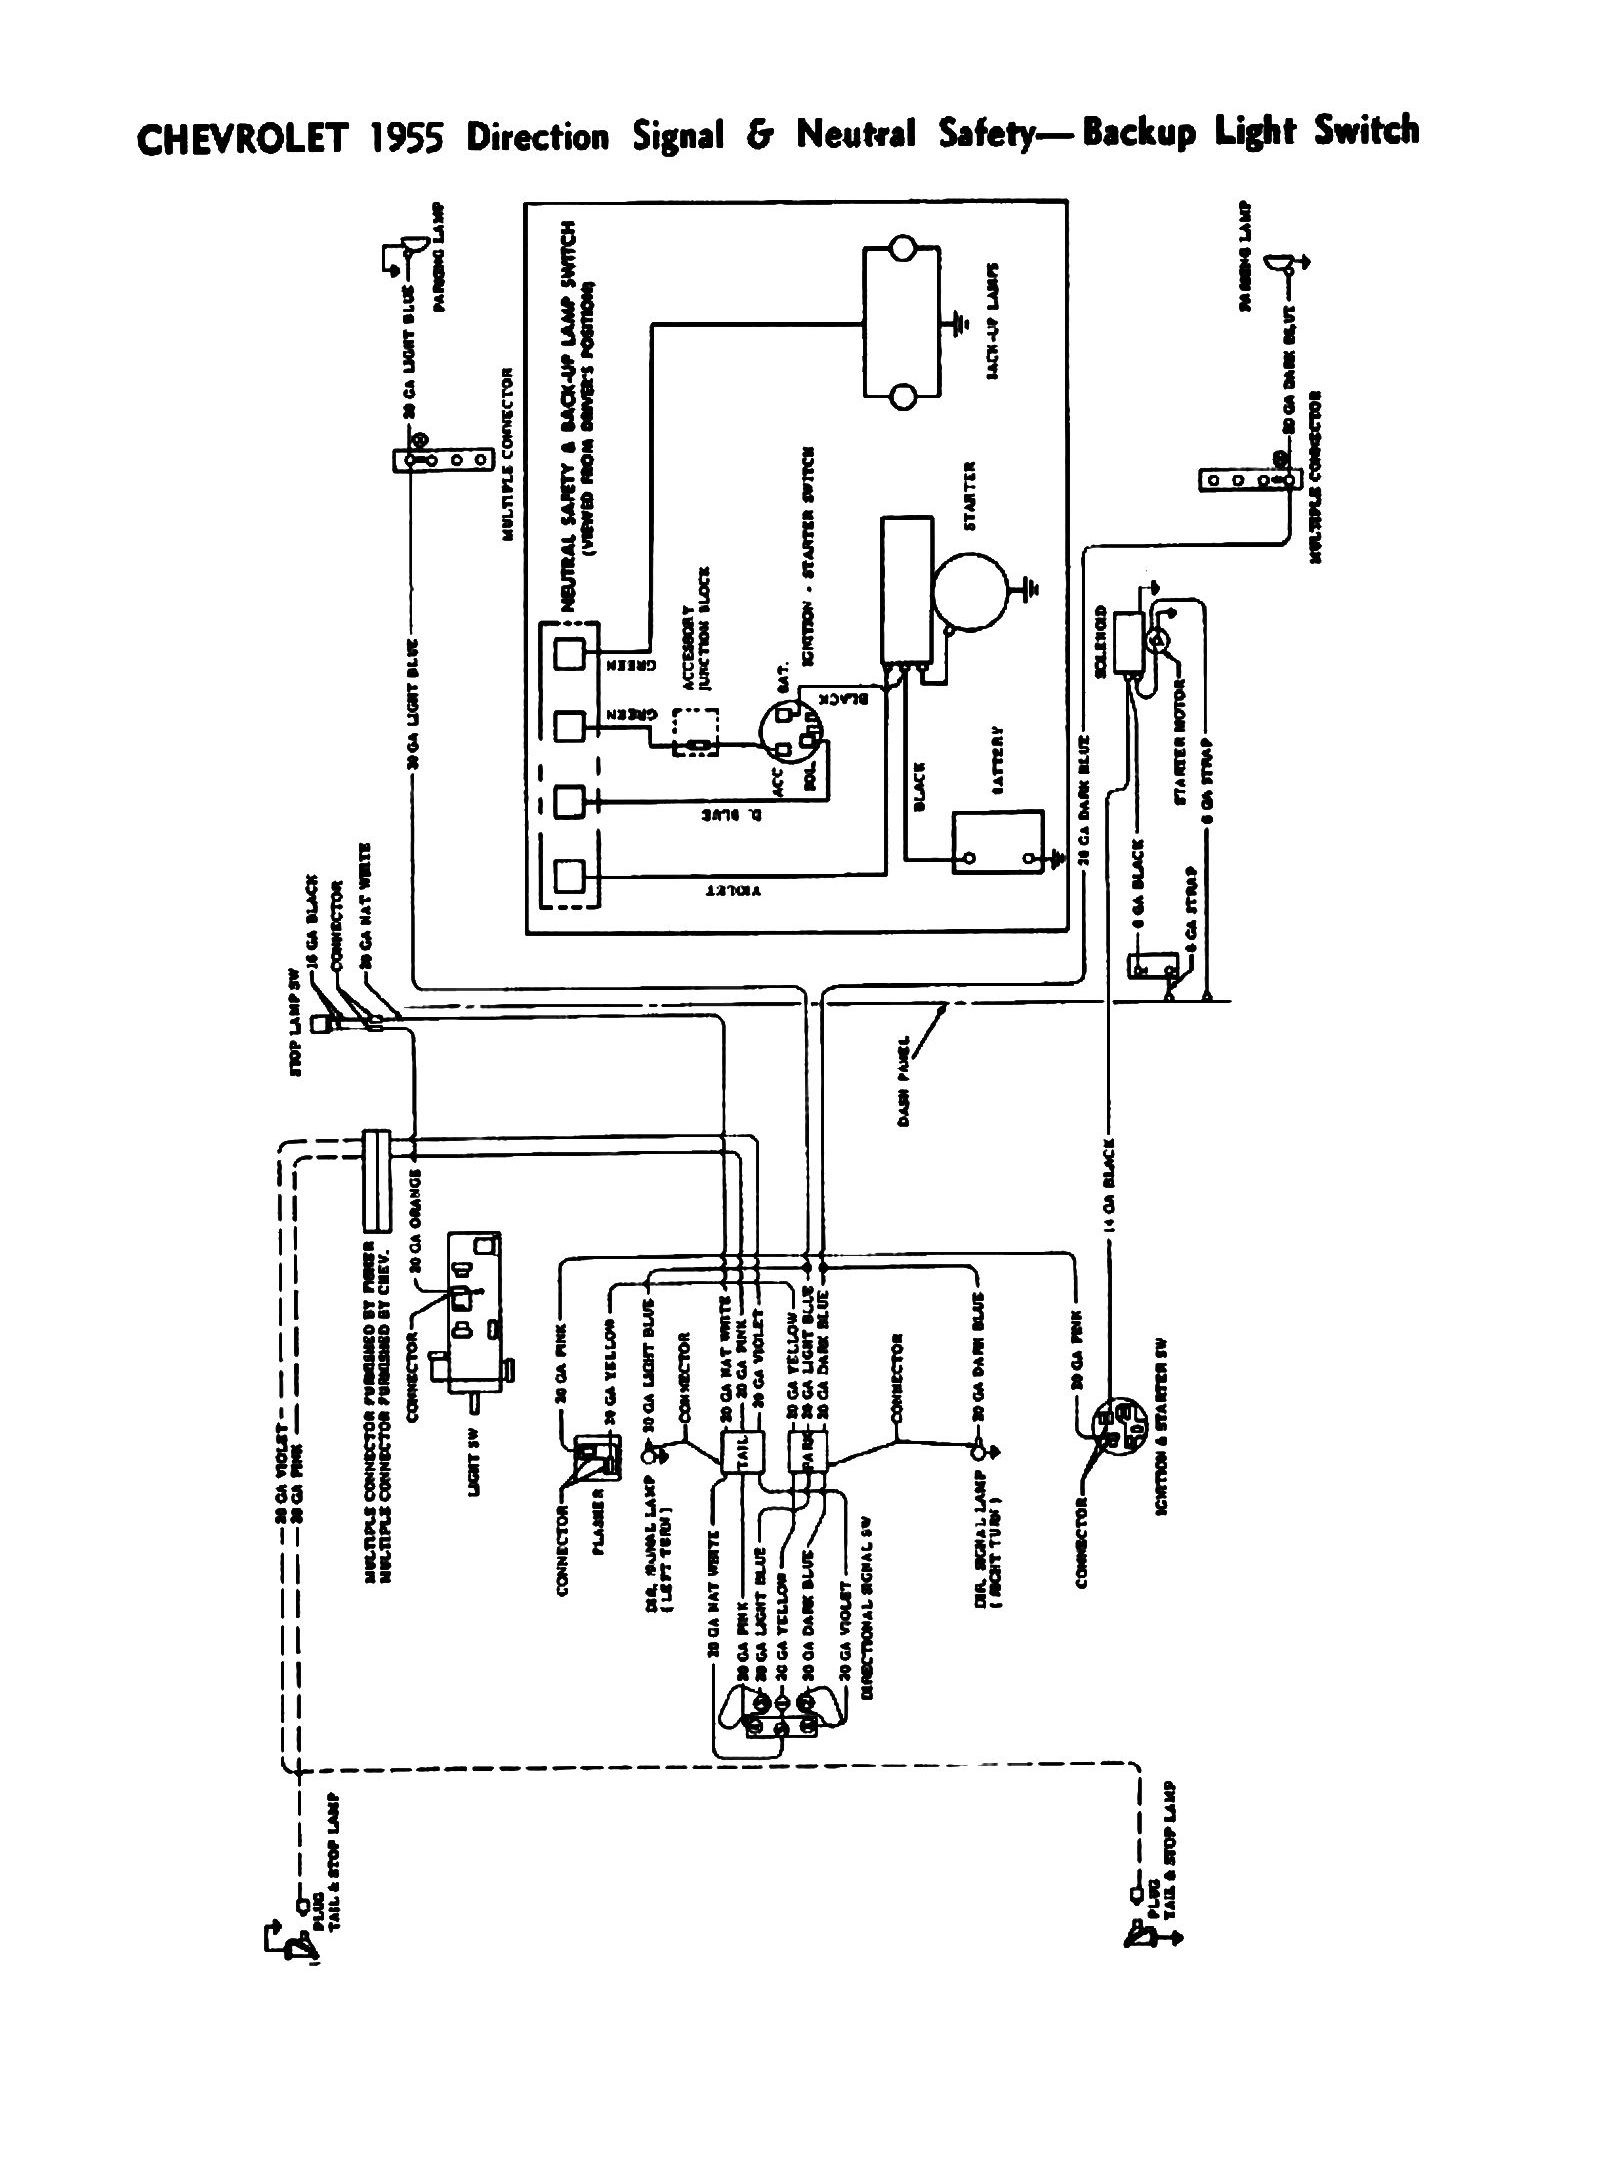 2001 S10 Tail Light Wiring Diagram Wiring Diagram In Addition 57 Chevy  Heater Diagram Also 1996 Chevy